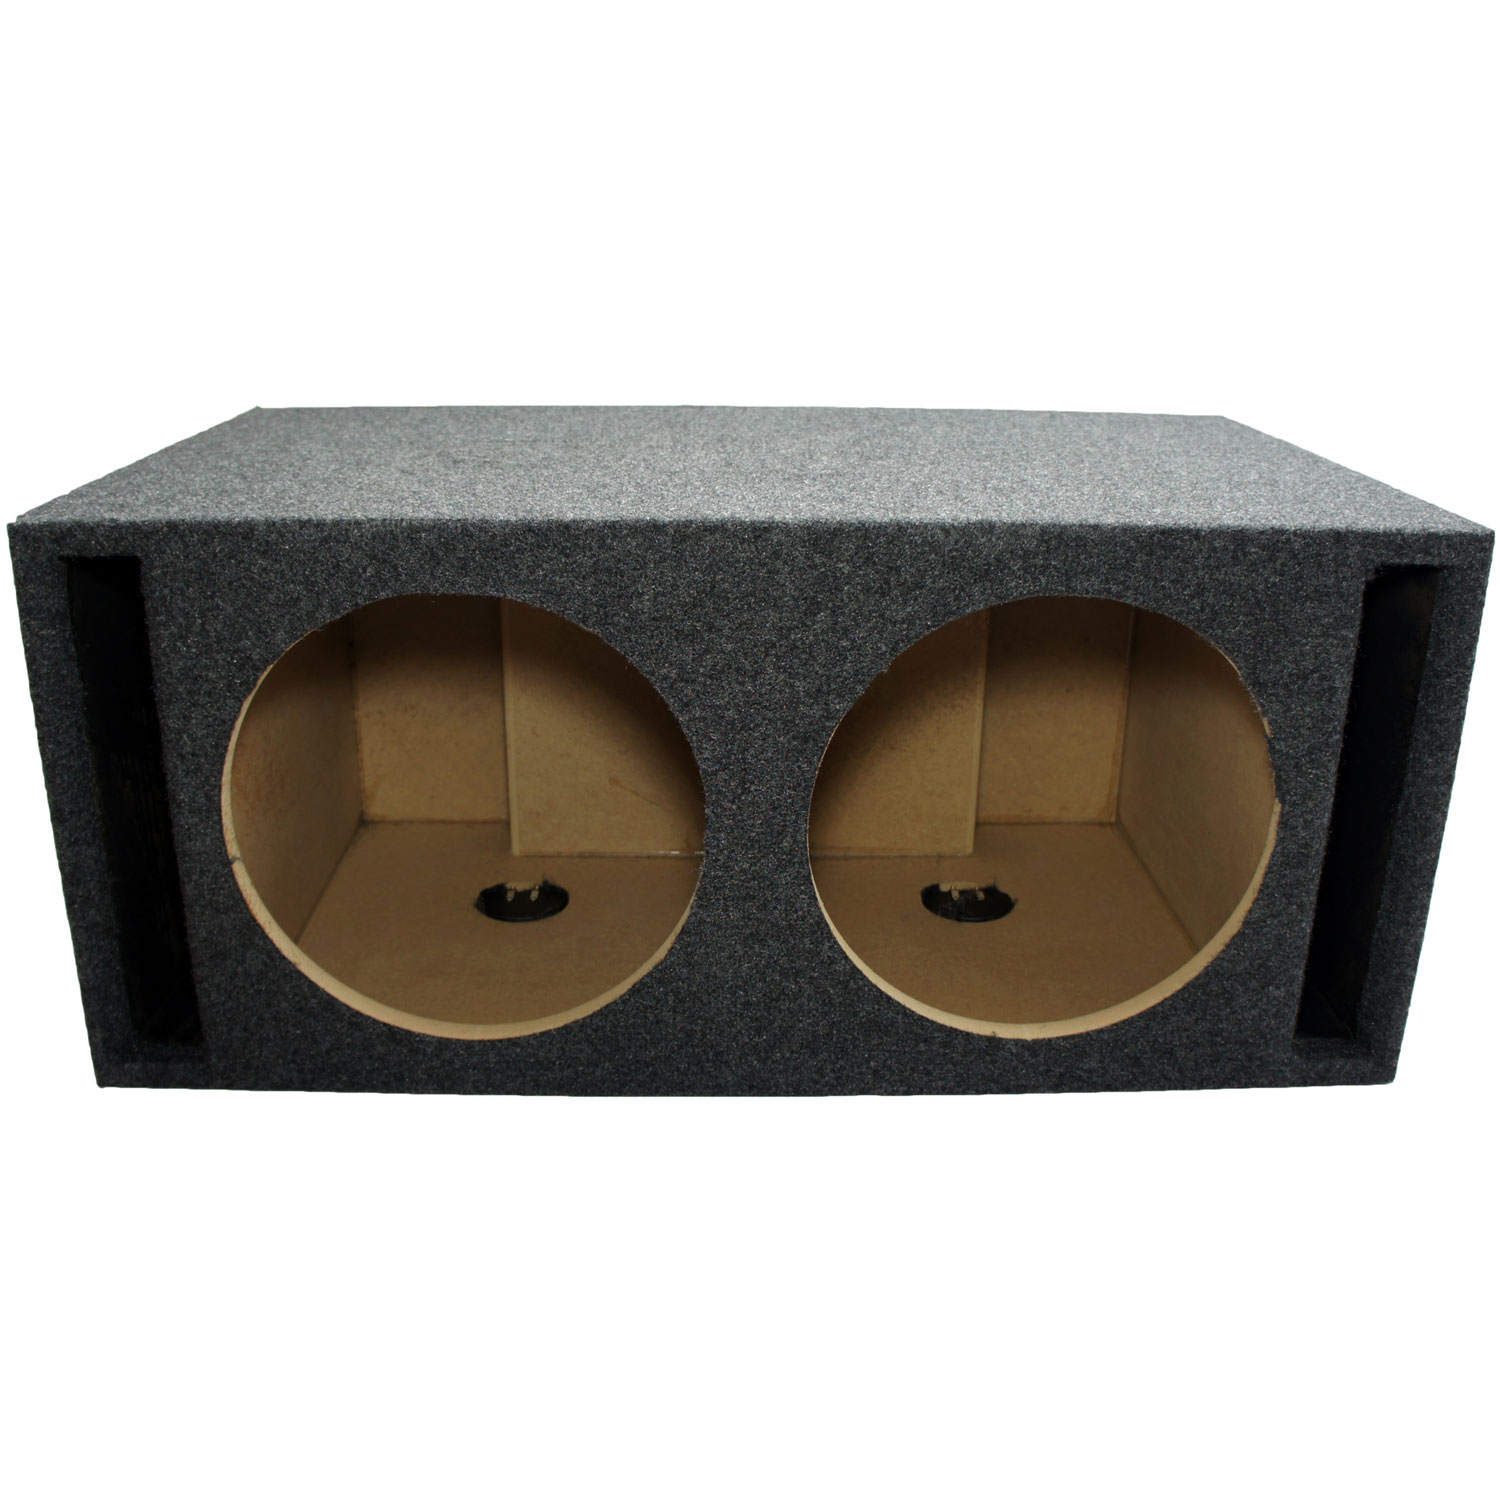 "Custom Car Audio Dual 12"" Slot Ported Sub Box"